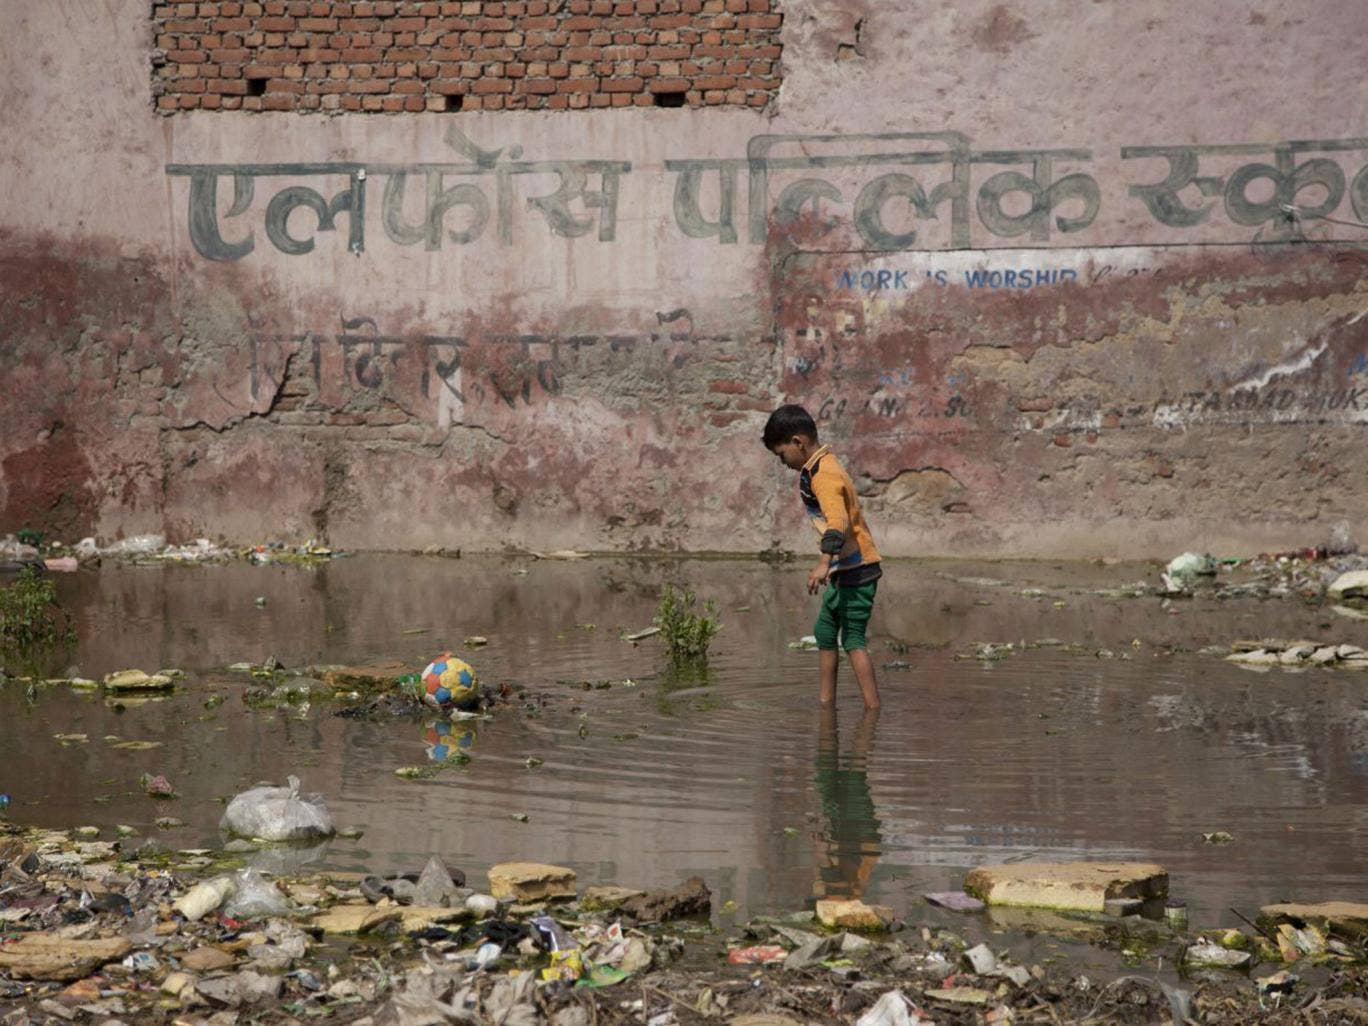 Poverty and poor sanitation are key factors in the spread of the disease